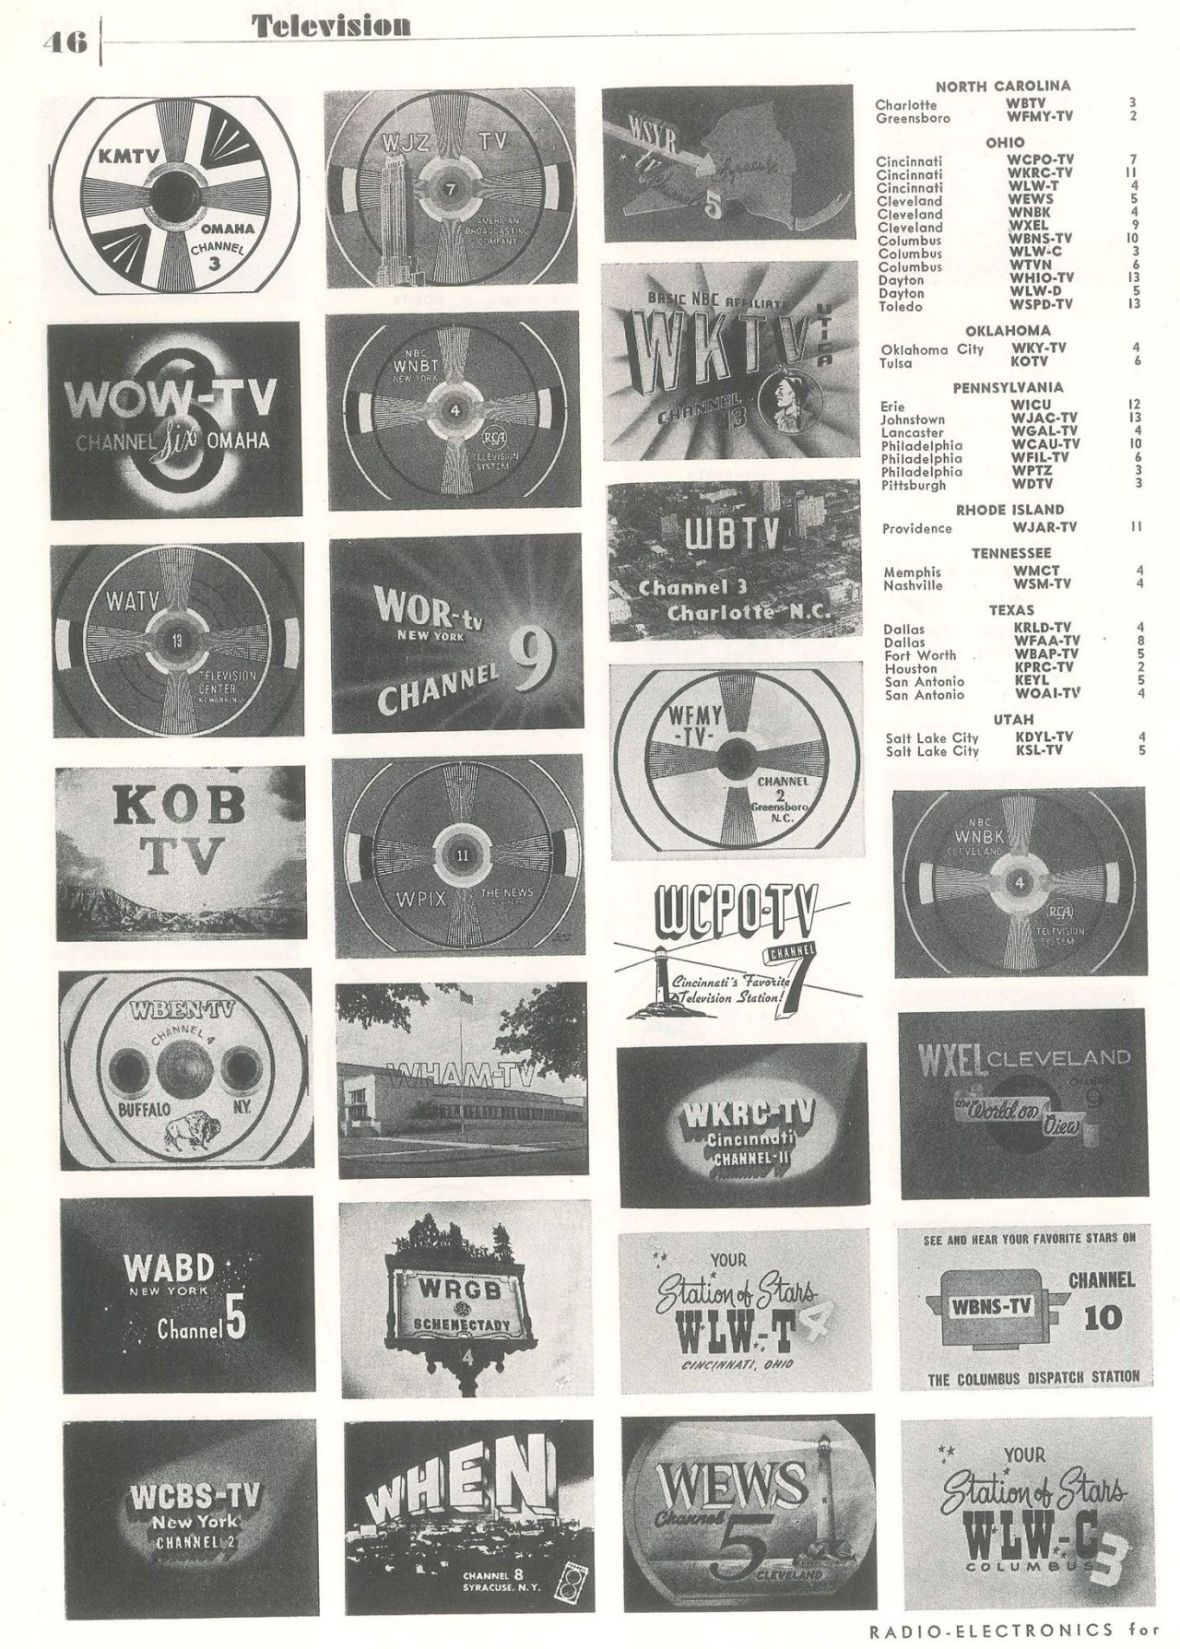 'TV Station List' - page 3 of 4 - published in Radio-Electronics - January 1951